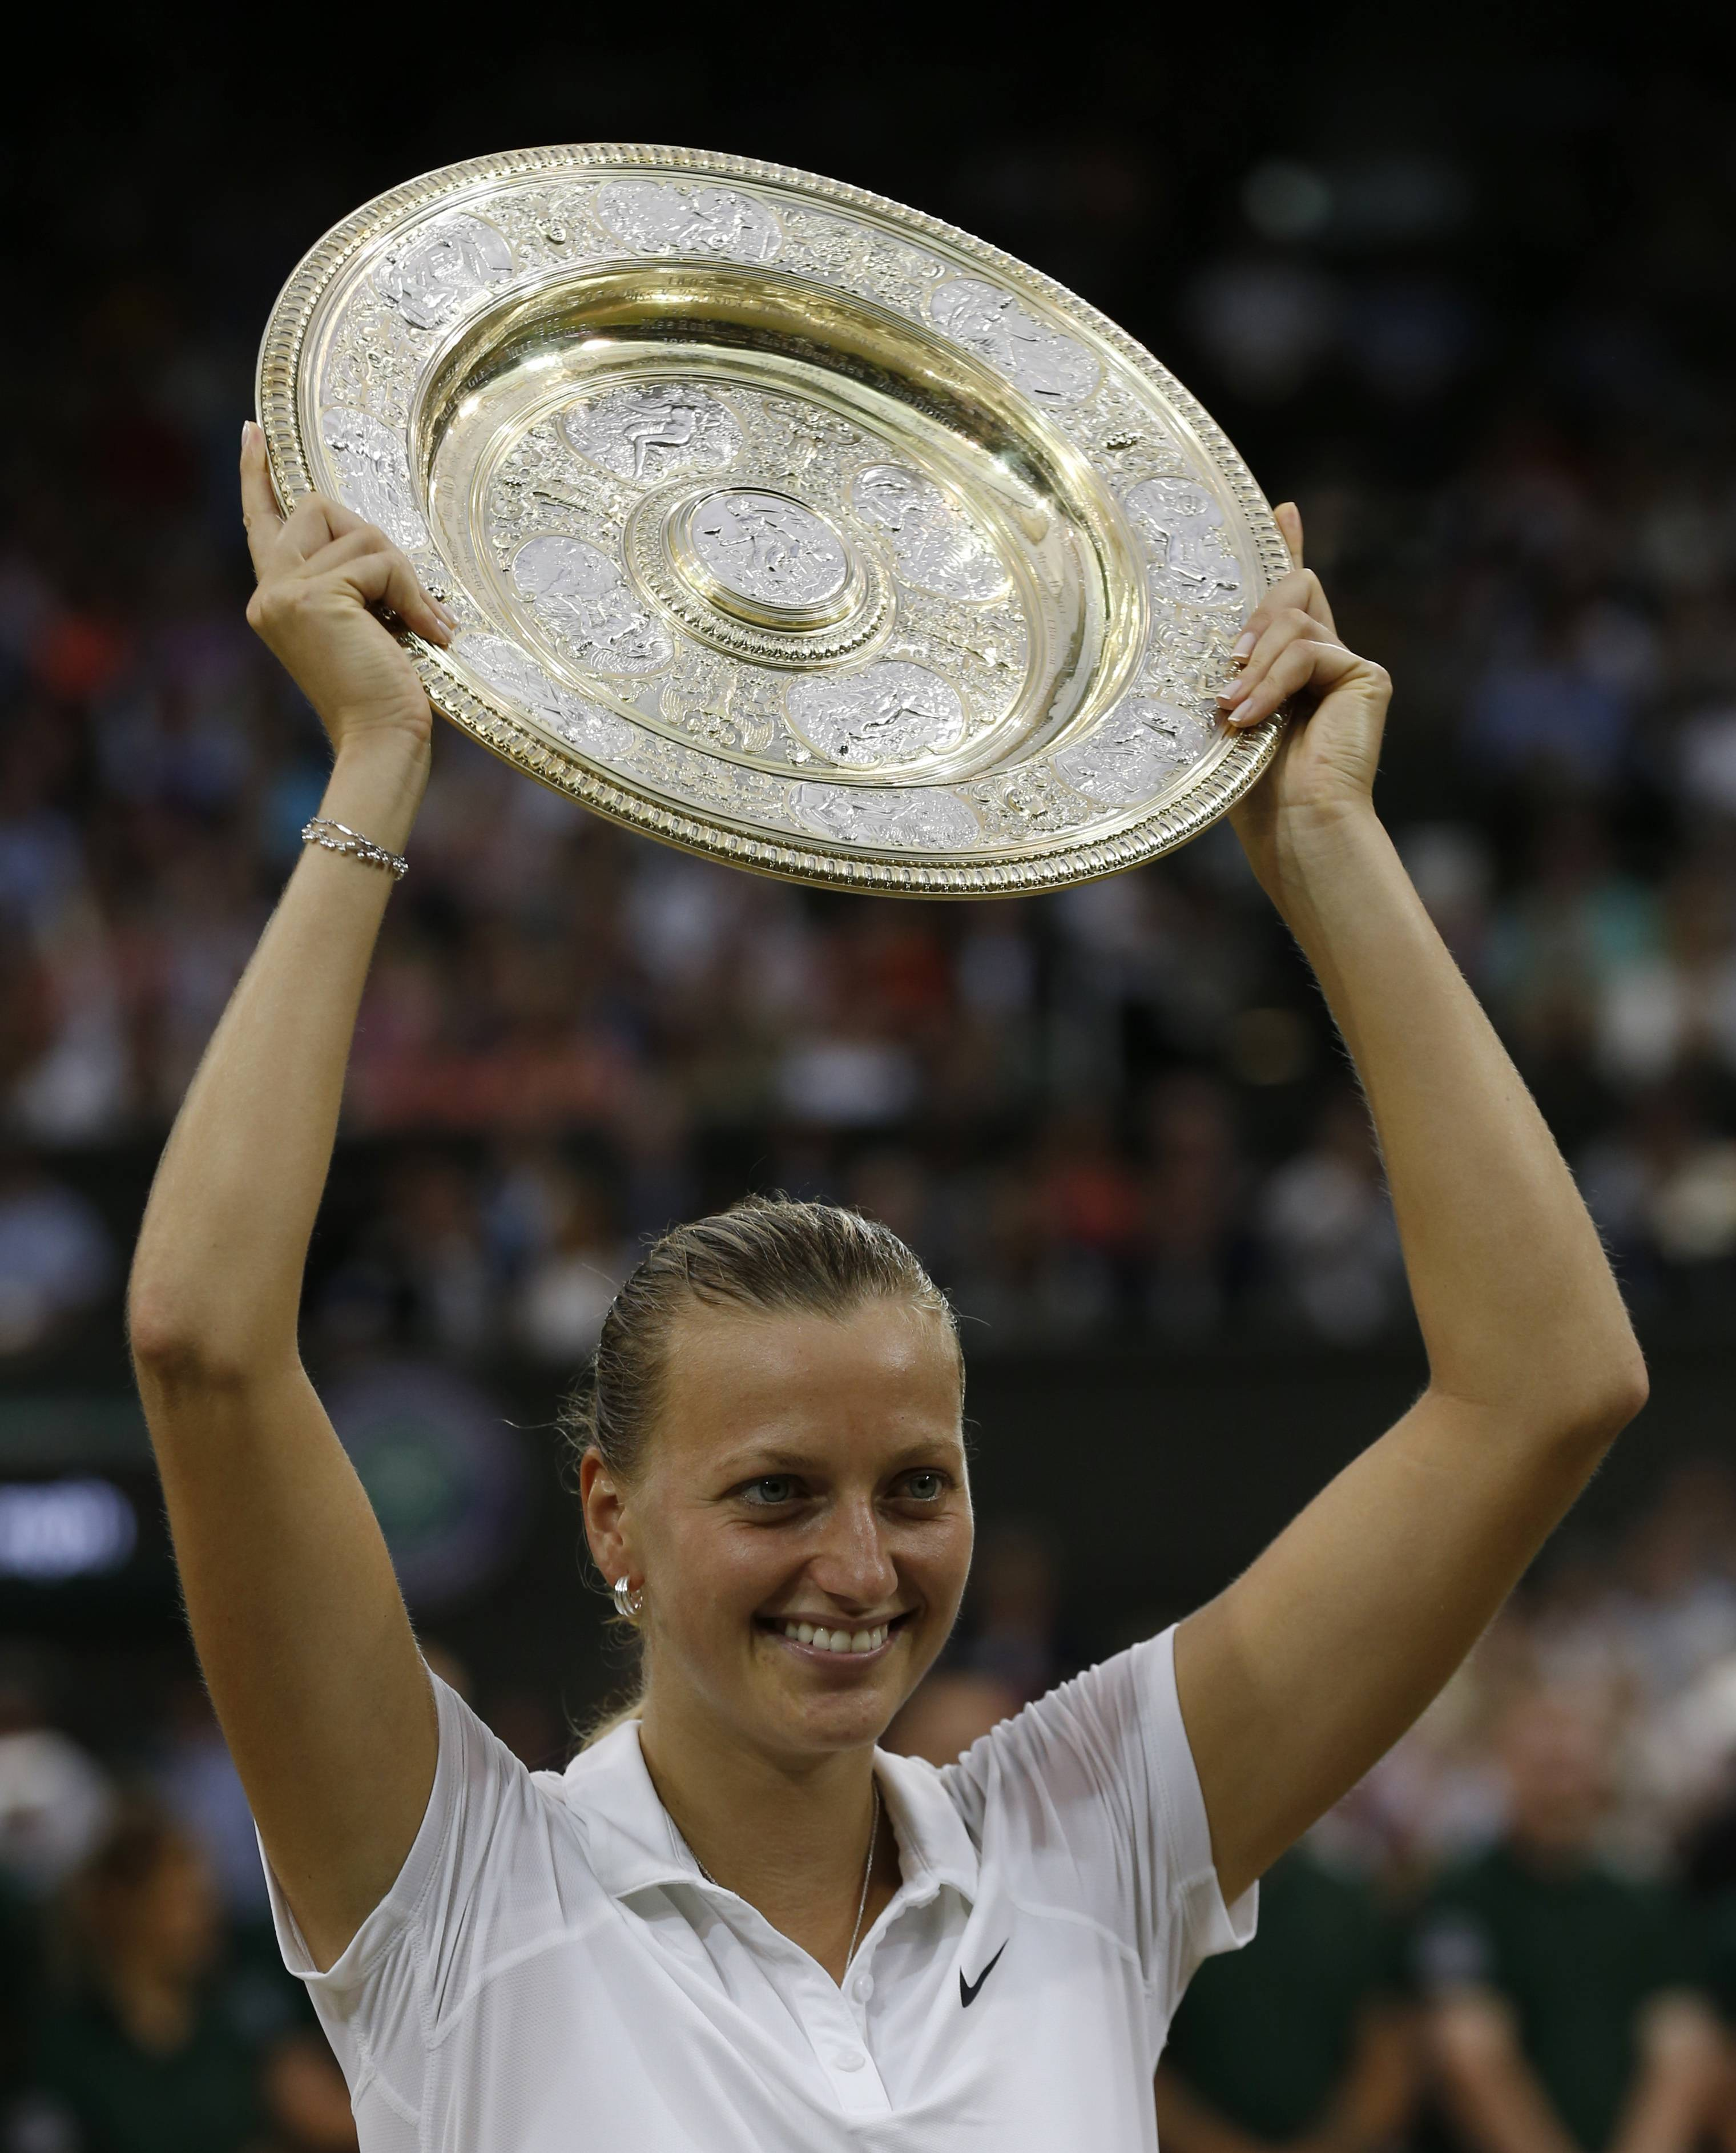 Petra Kvitova of Czech Republic holds up the trophy after winning the women's singles final against Eugenie Bouchard of Canada at the All England Lawn Tennis Championships in Wimbledon, London, Saturday July 5.